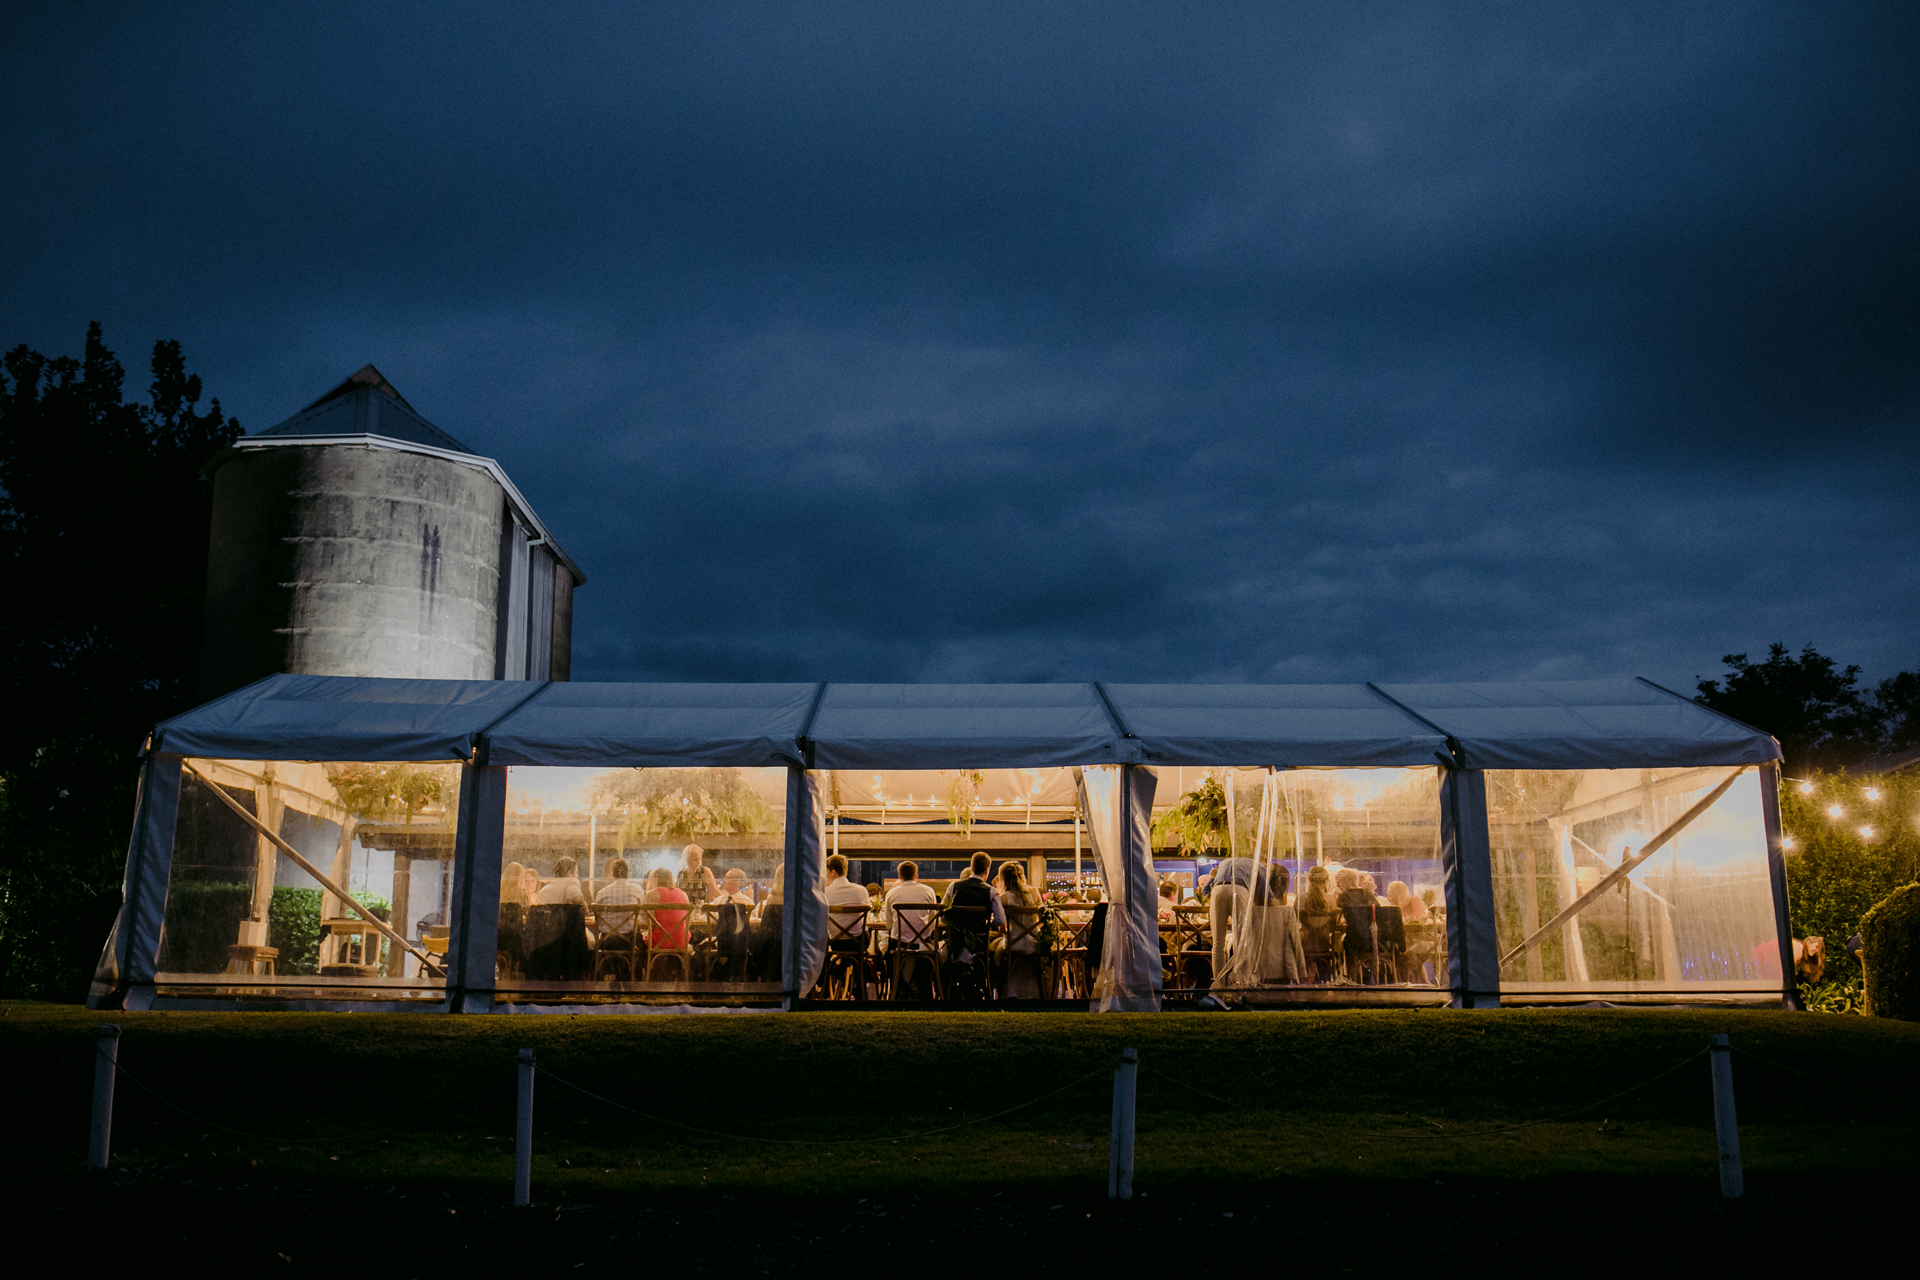 Wedding reception tent photography showing informal atmosphere